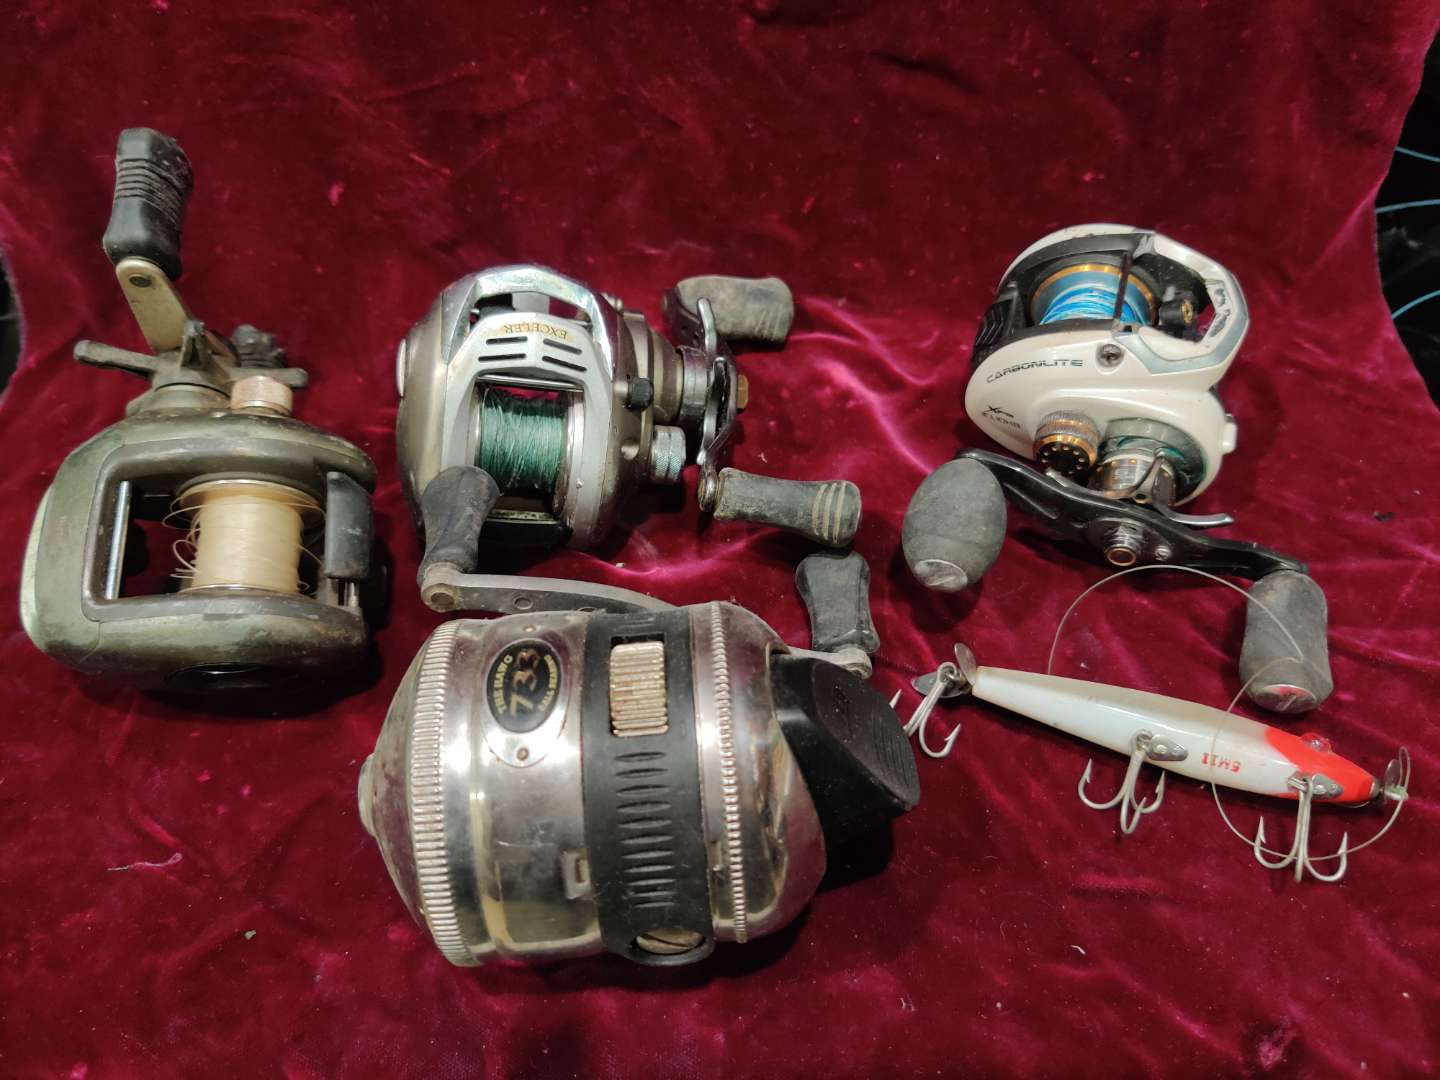 # 75 lot of four baitcasting fishing reels and one lure